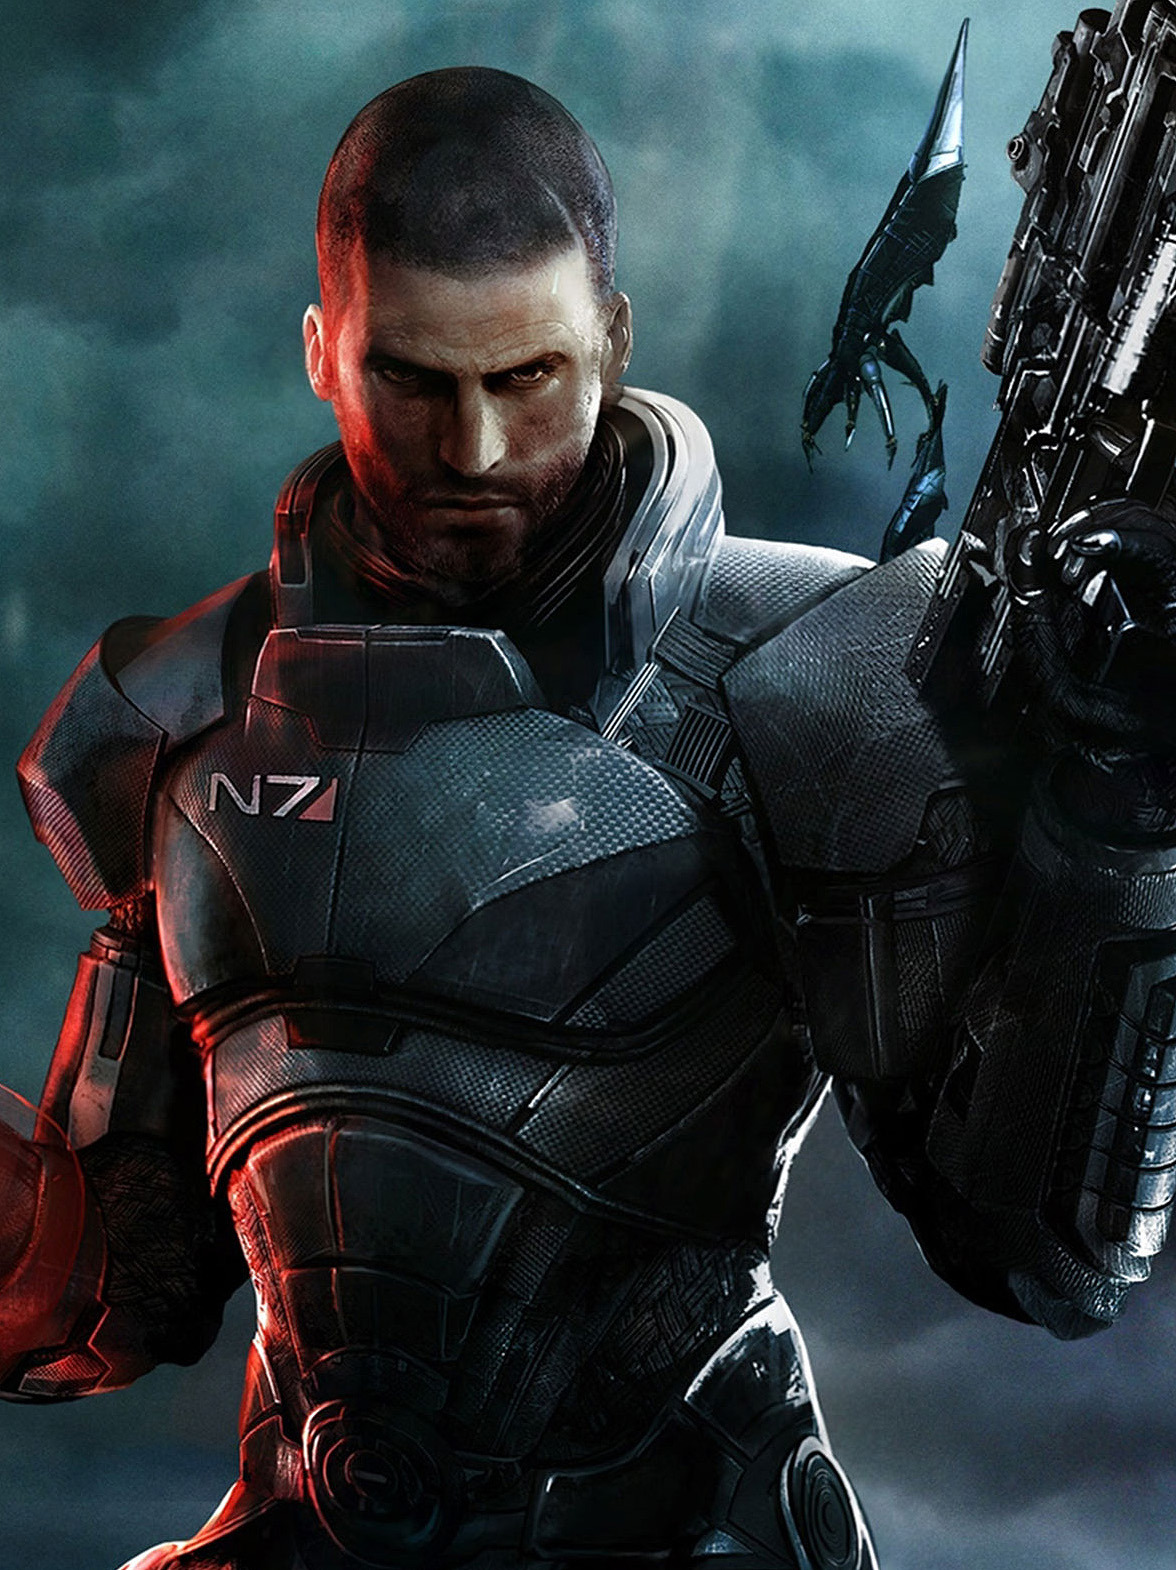 gamefreaksnz:  Mass Effect 3: Extended Cut DLC coming next week  A long-awaited DLC package aimed at fixing the ending of BioWare's sci-fi epic Mass Effect 3 will launch next week.  Too bad it's 2 GB… I really need a bigger HDD 20 is not enough